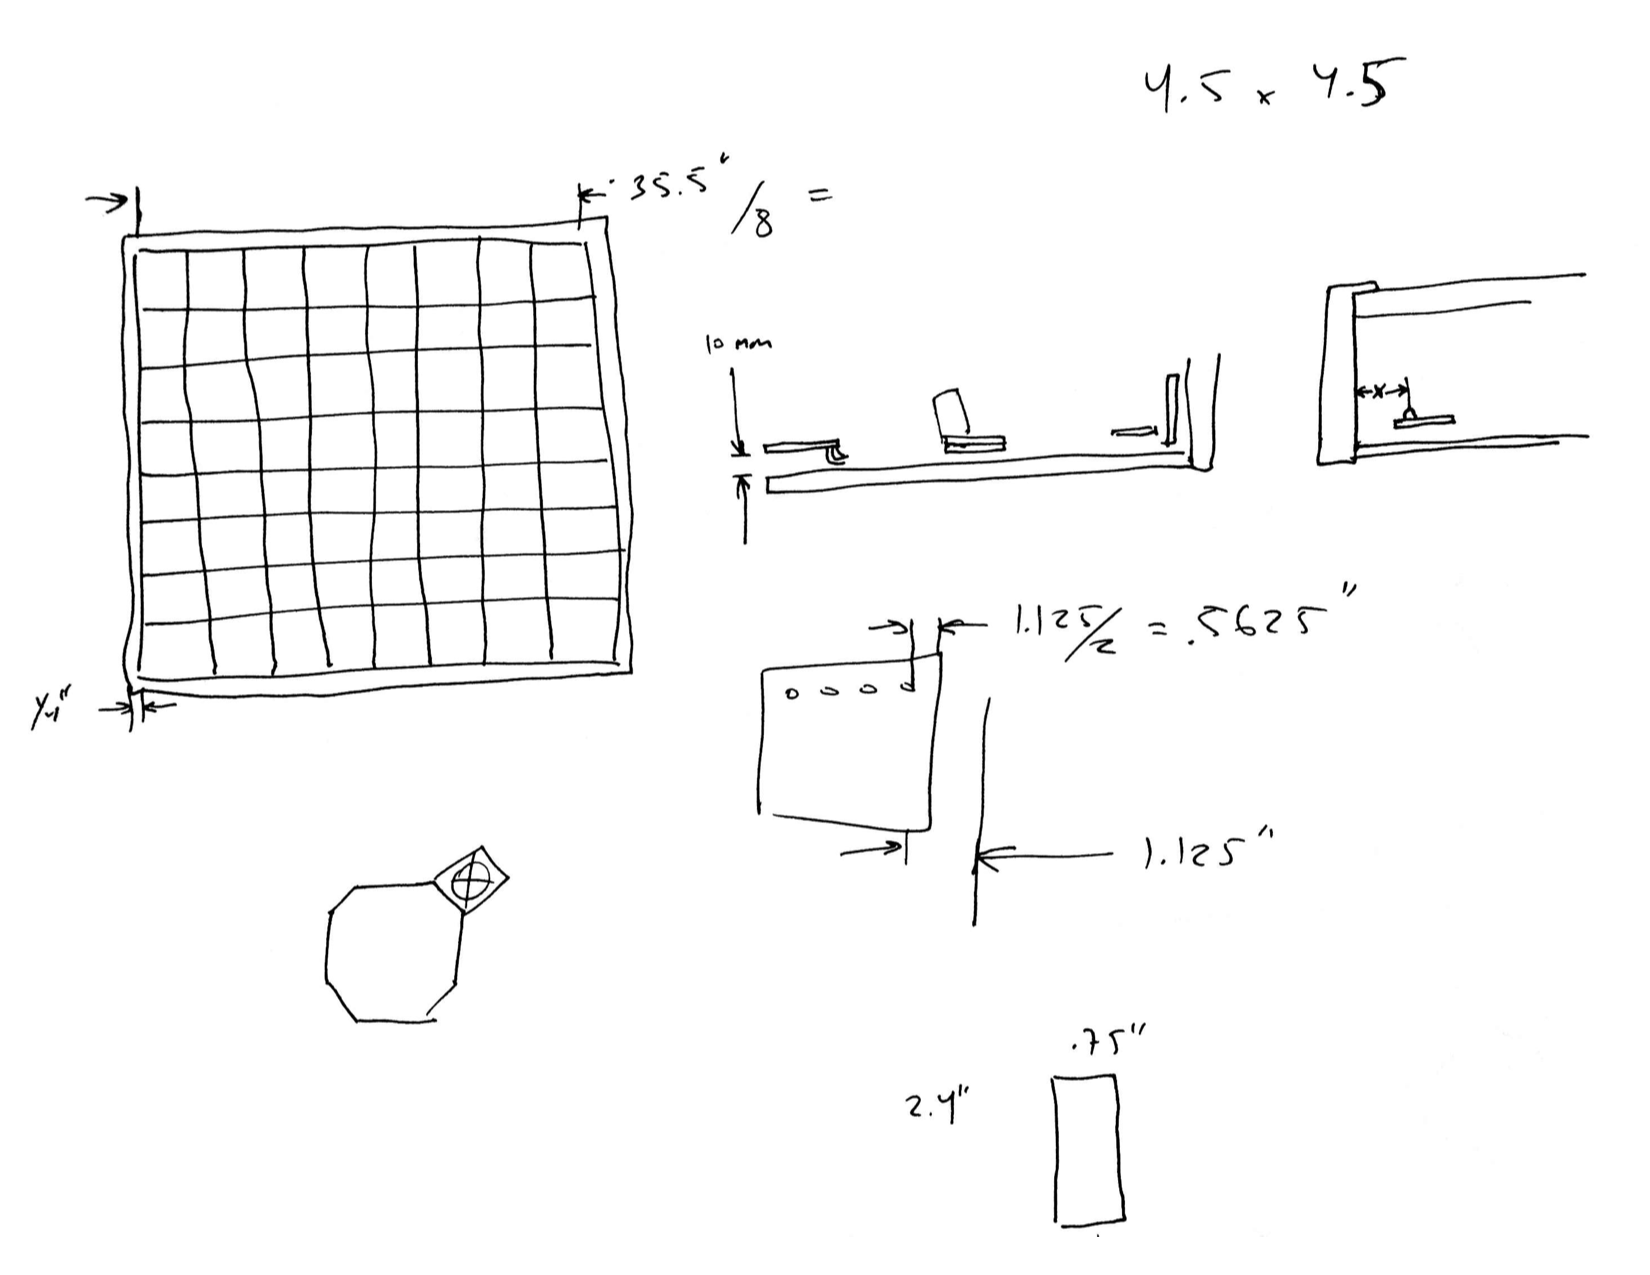 A sketch of potential assembly